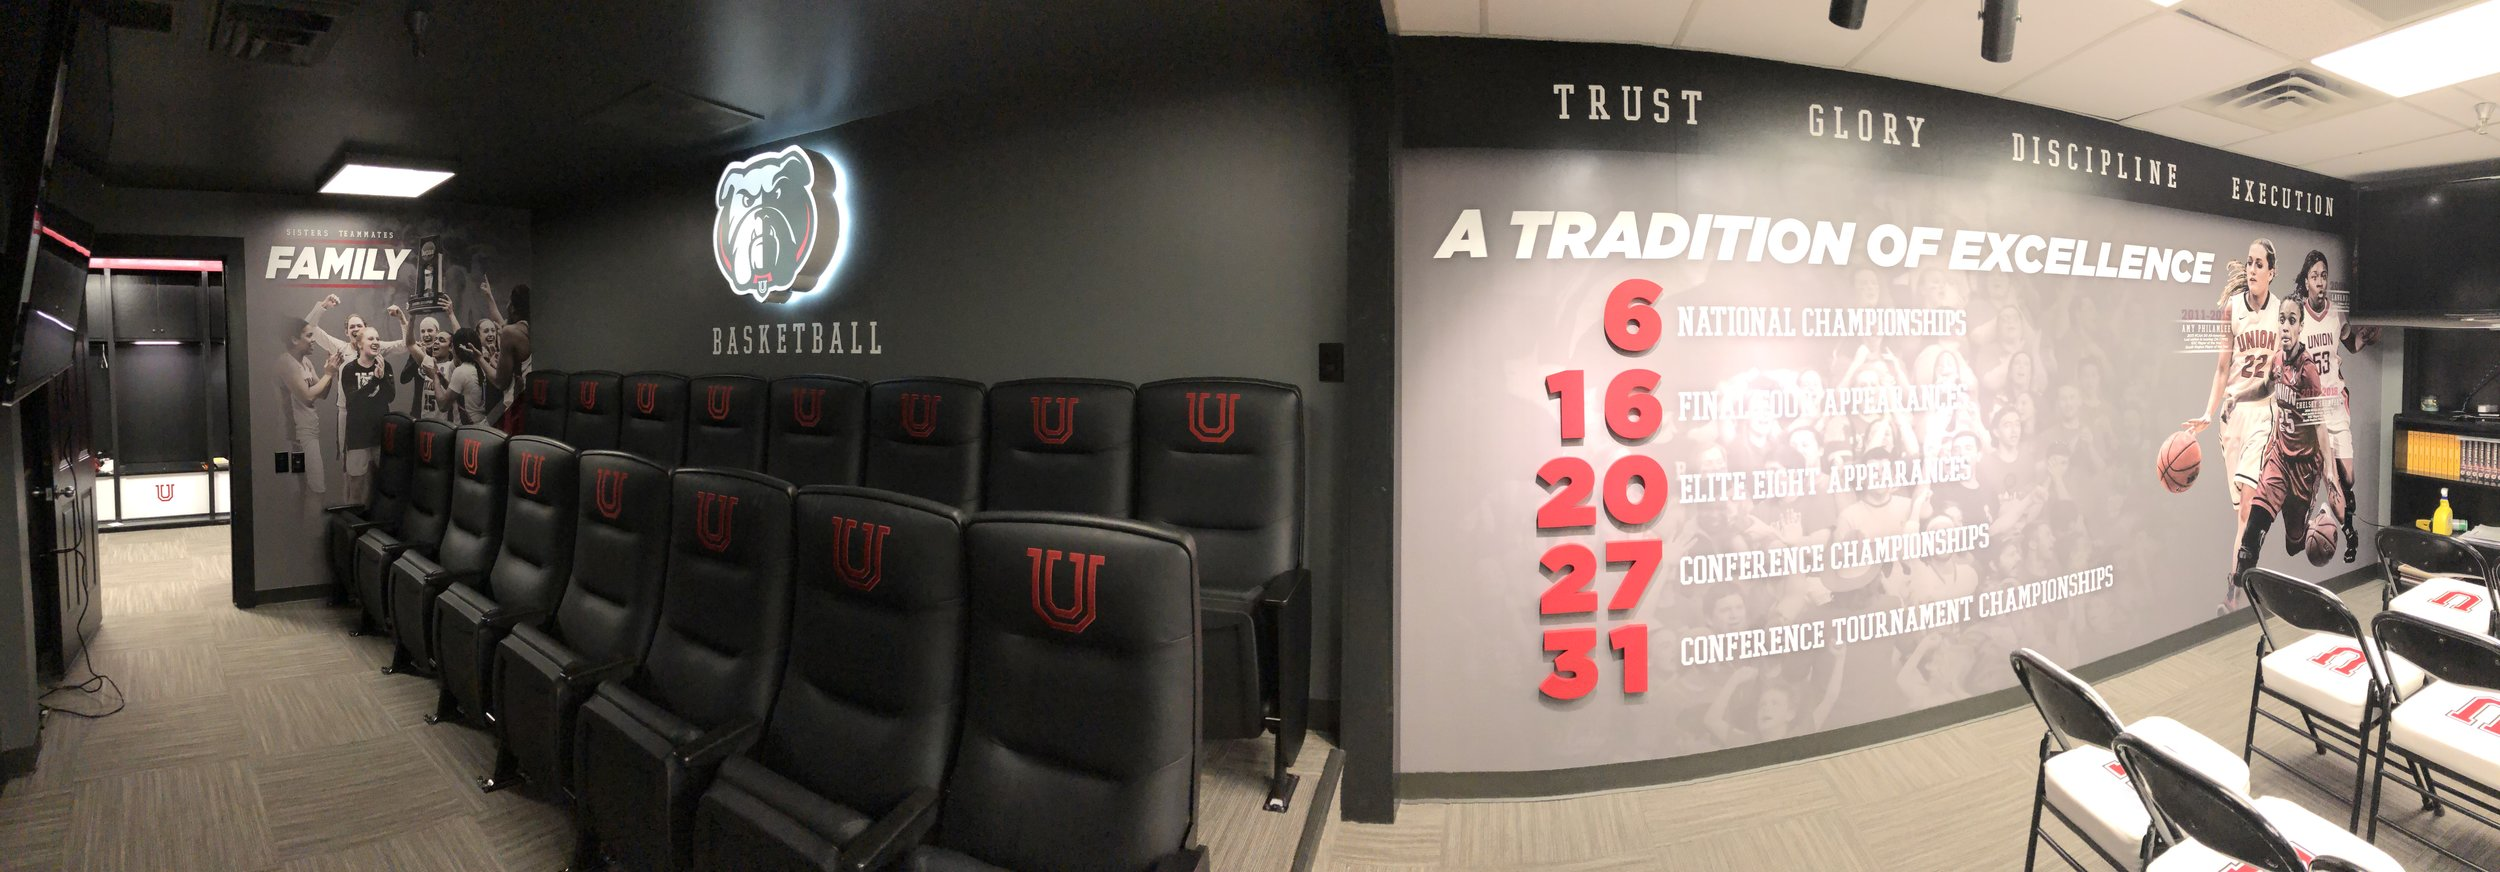 After-Union-University_Womens-Basketball-Locker-Room_Interior-Branding_LSIGraphics_Memphis-TN-18 ..